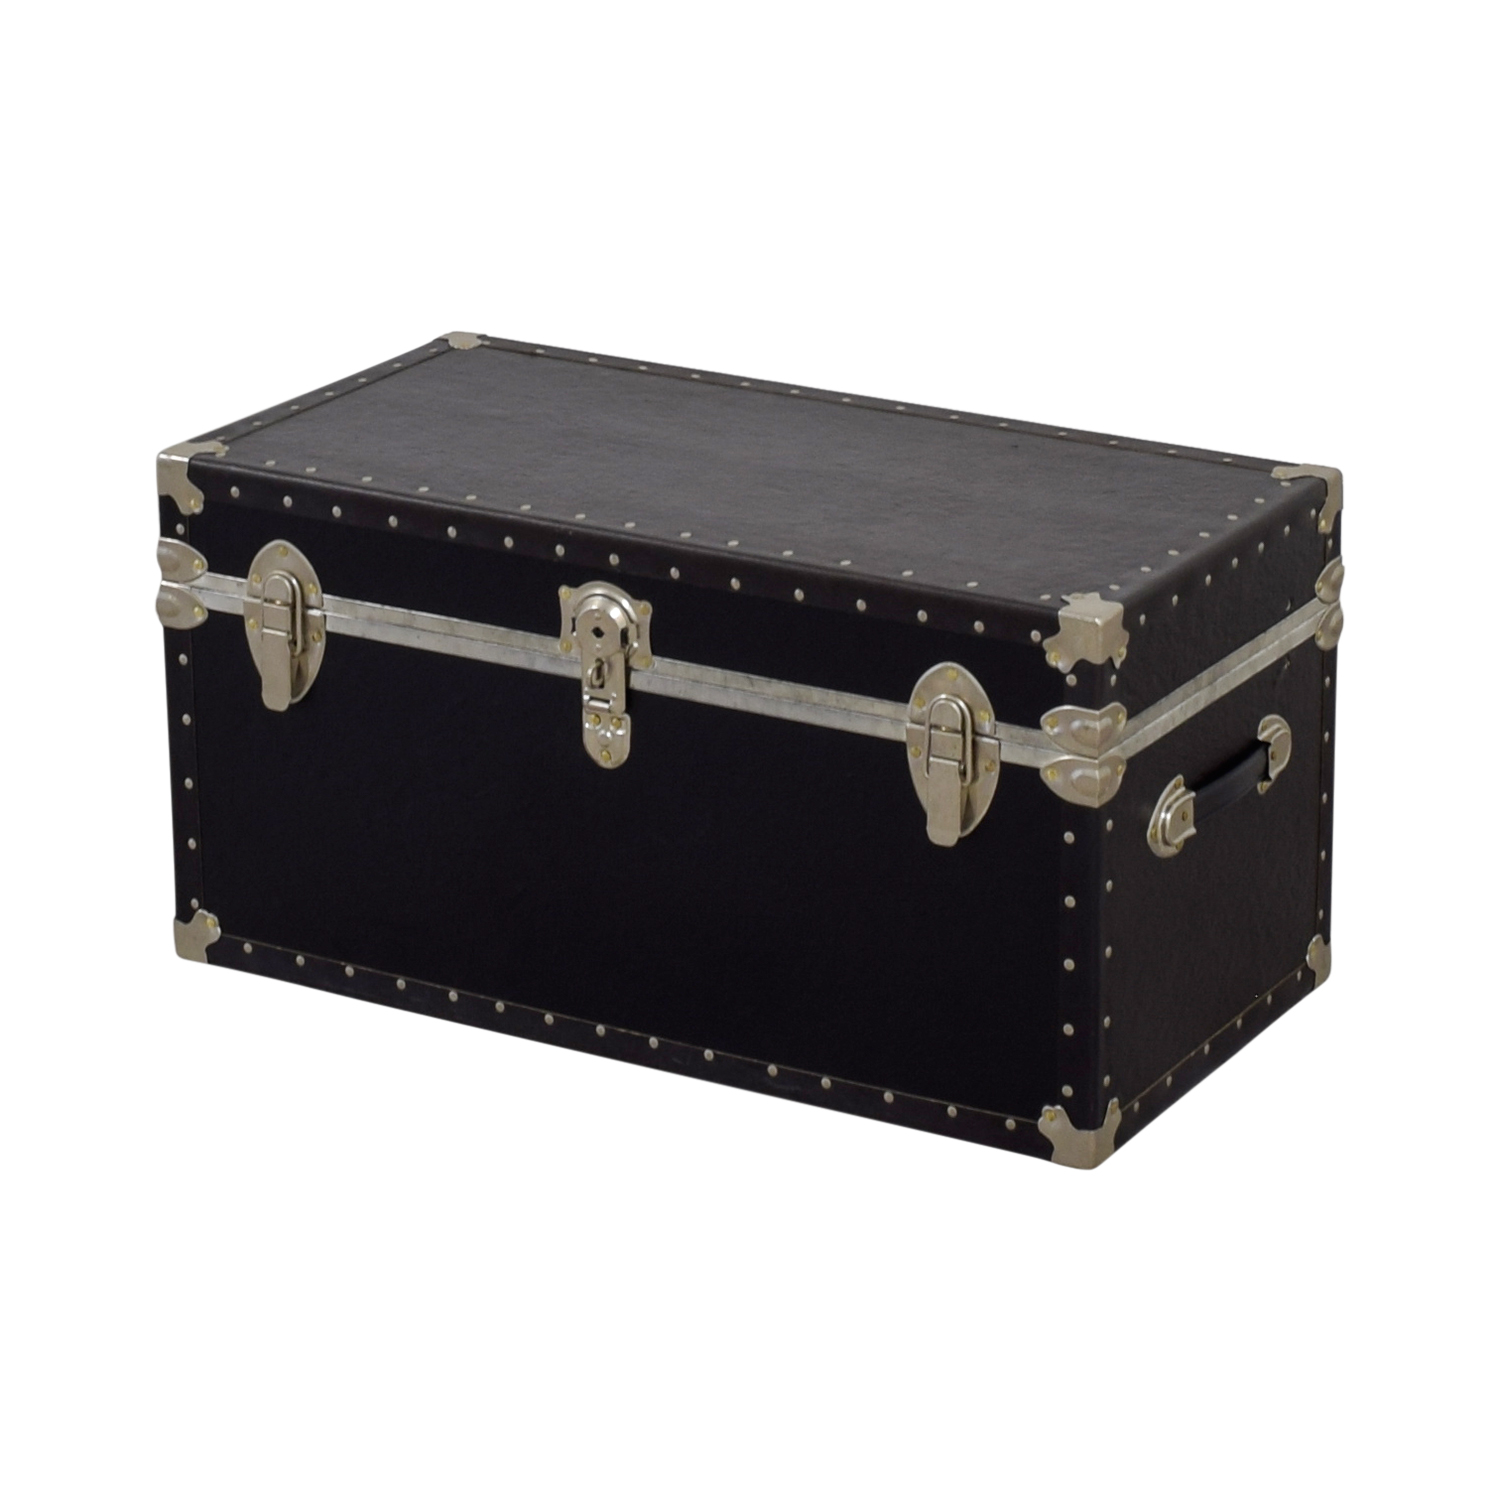 Black & Metal Trunk dimensions